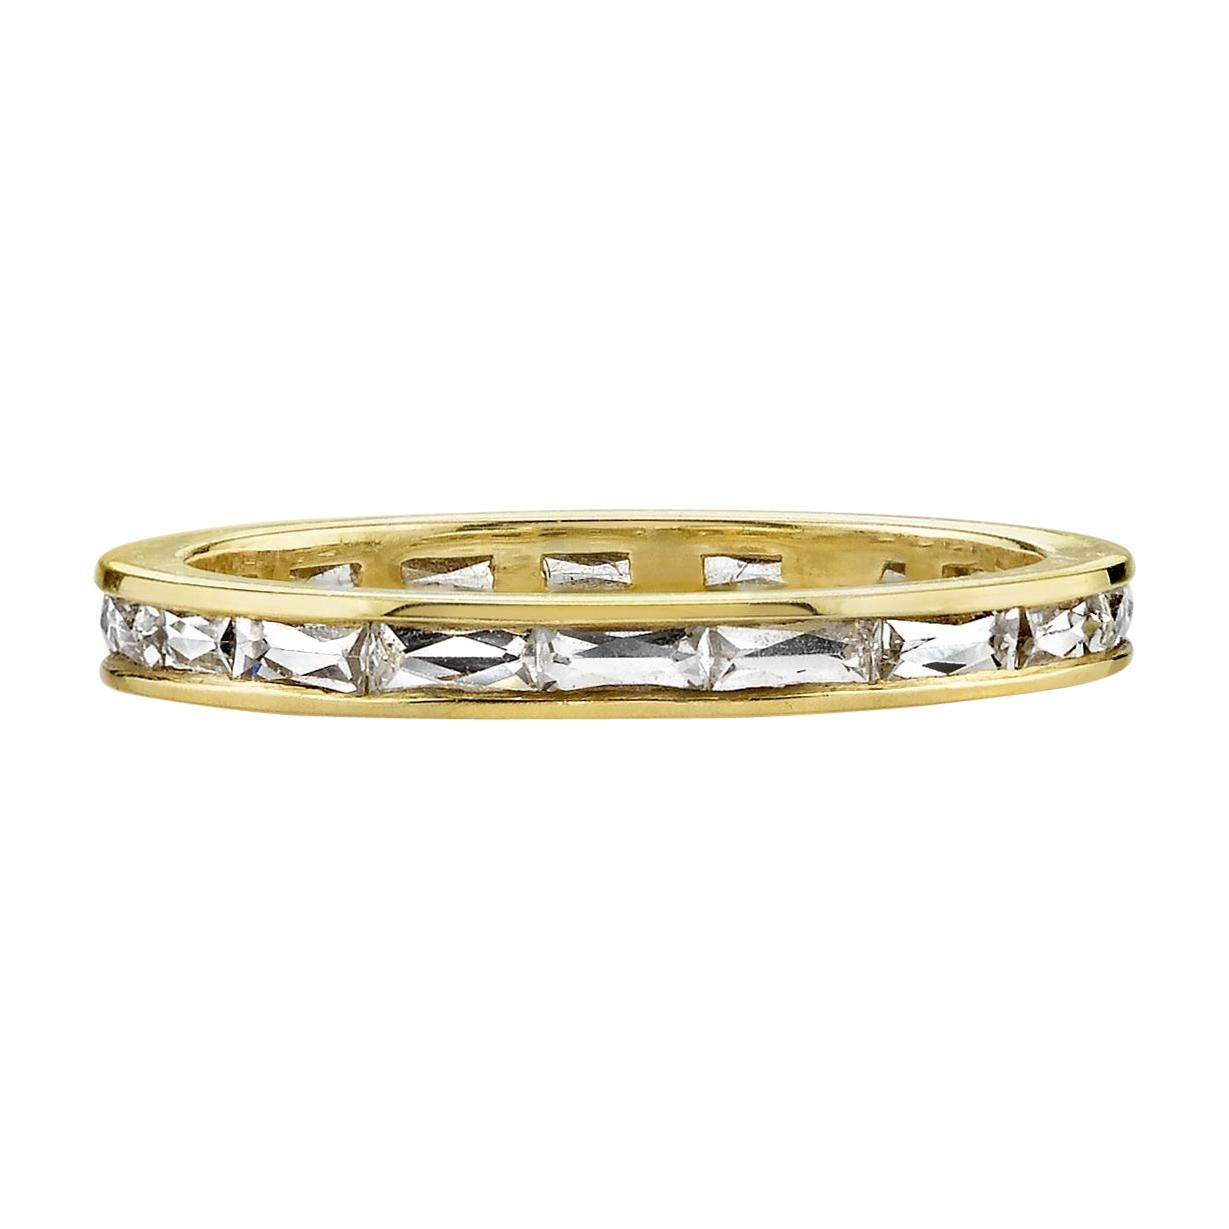 Handcrafted Channel Set French Cut Diamond Eternity Band.